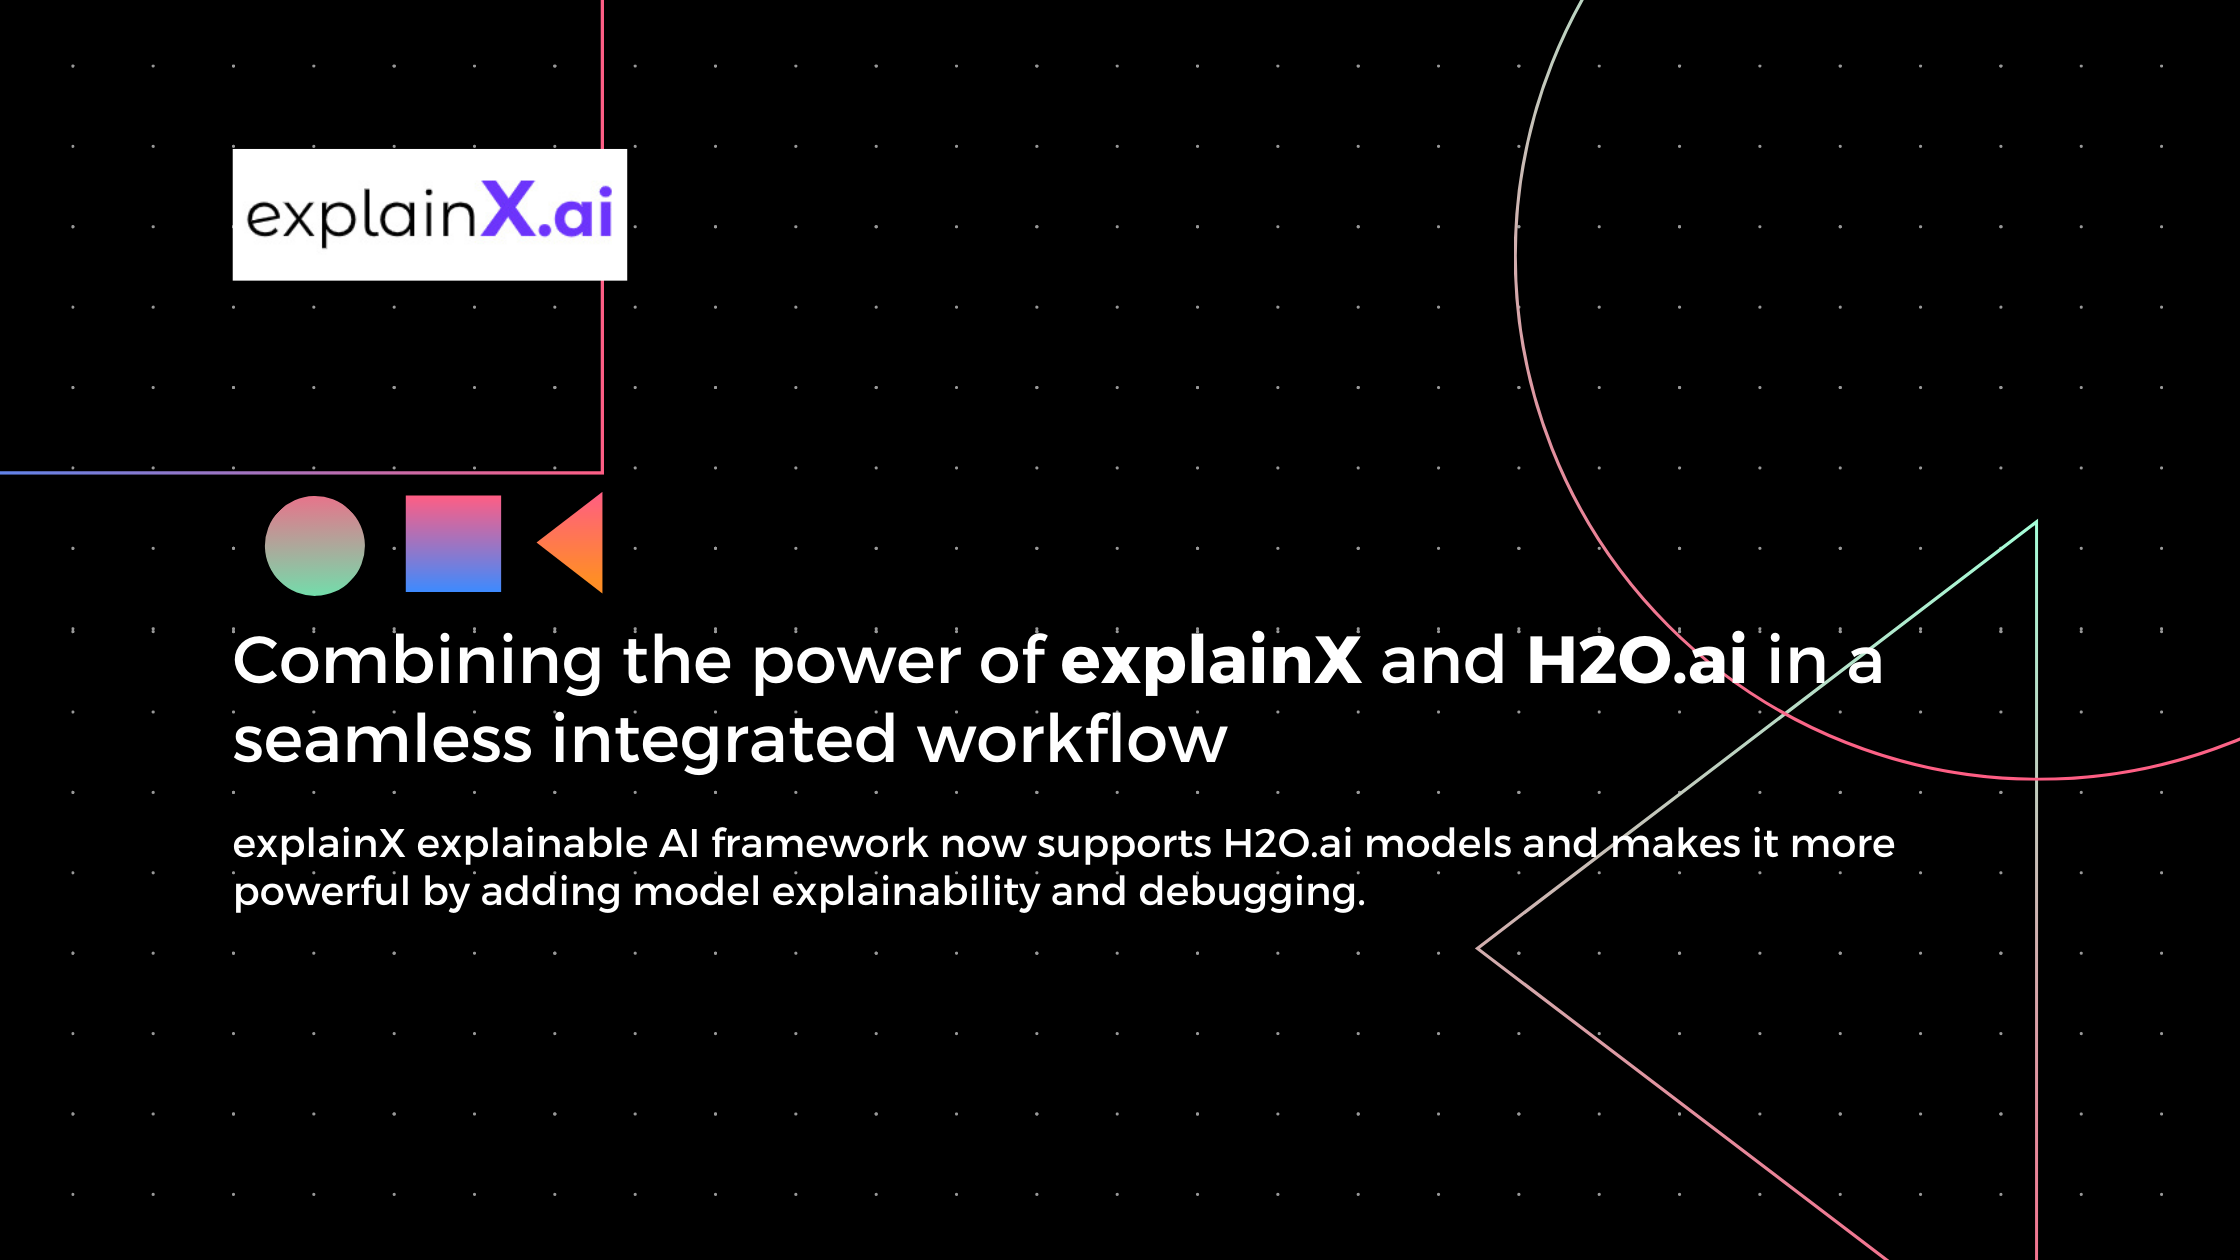 explainx and h2o seamless integration